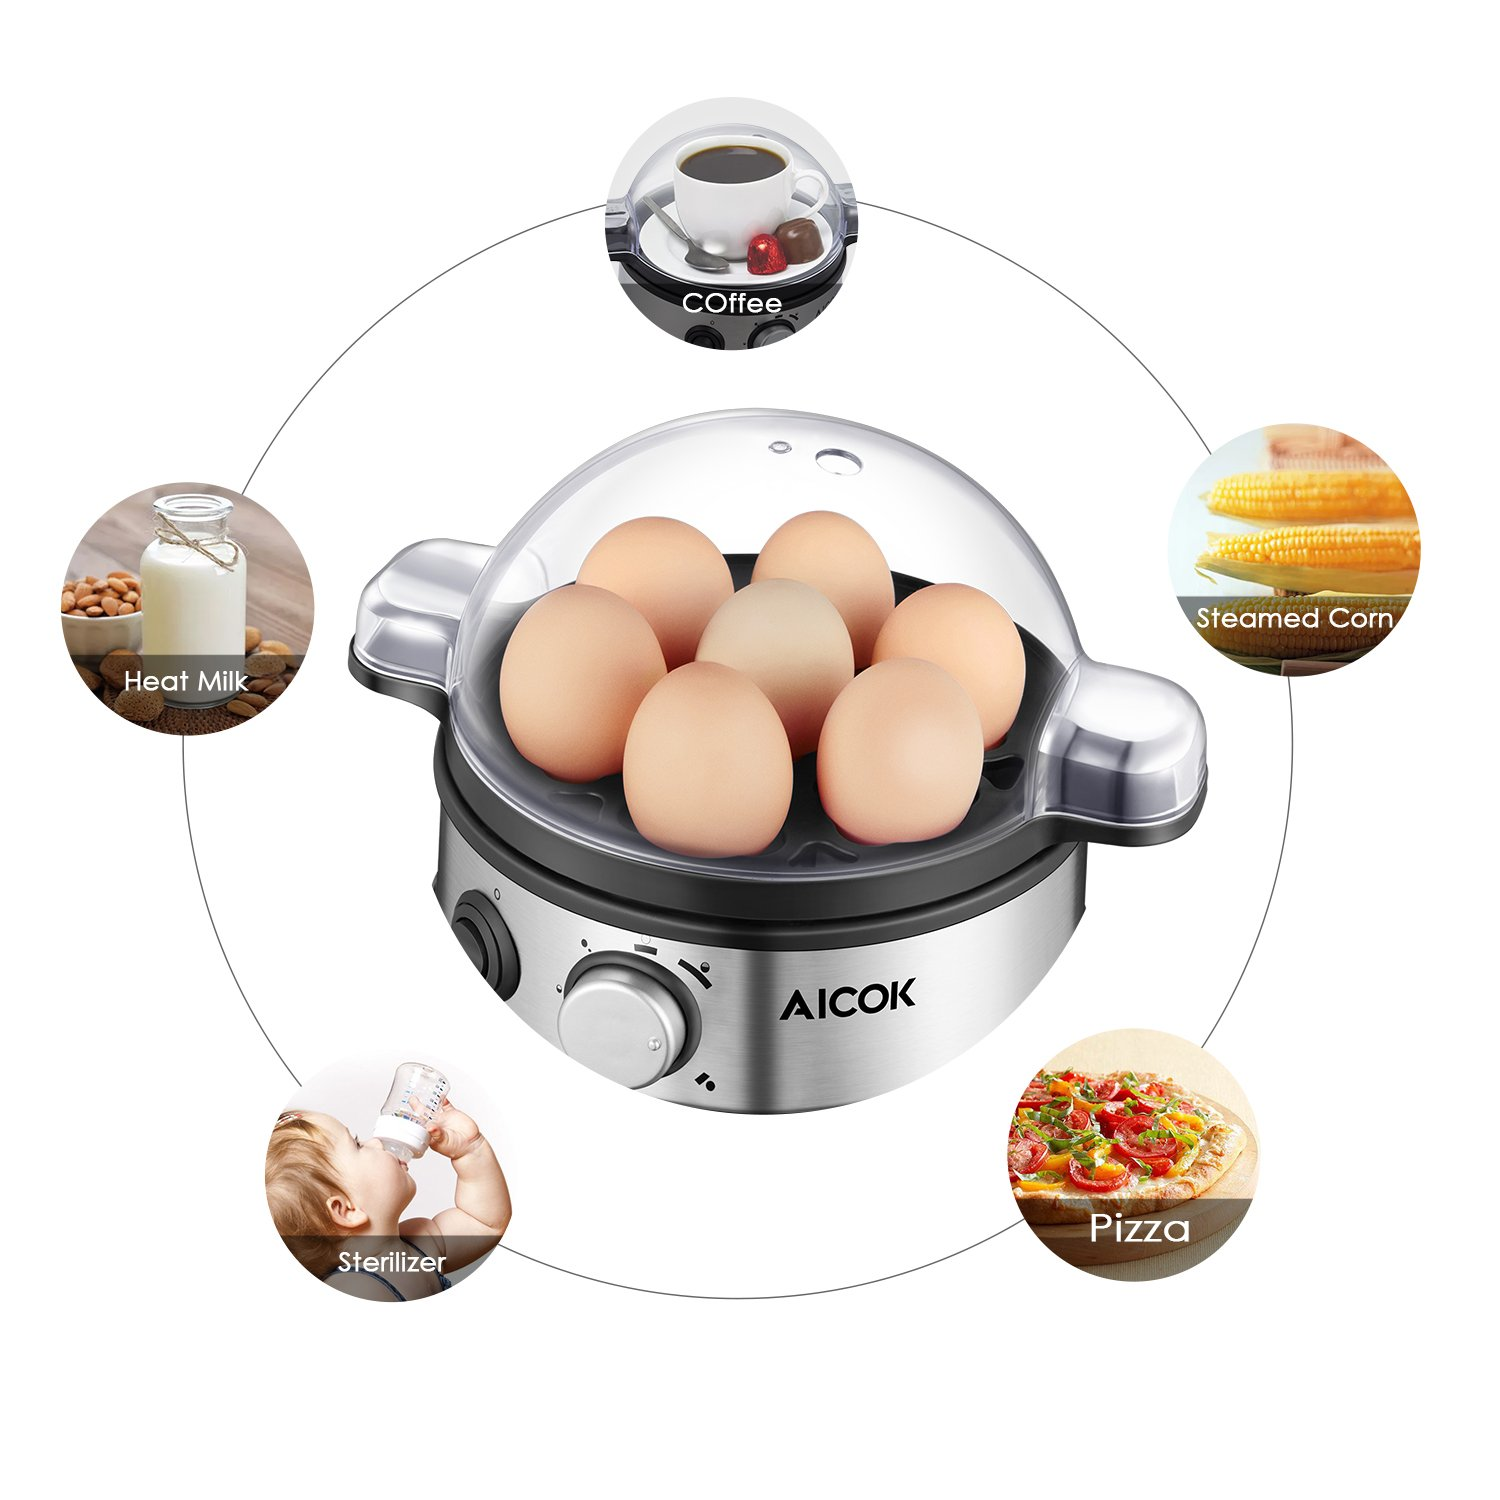 Aicok Egg Cooker, Egg Boiler, Electric Egg Maker with 7 Egg Capacity, Egg Steamer Stainless Steel